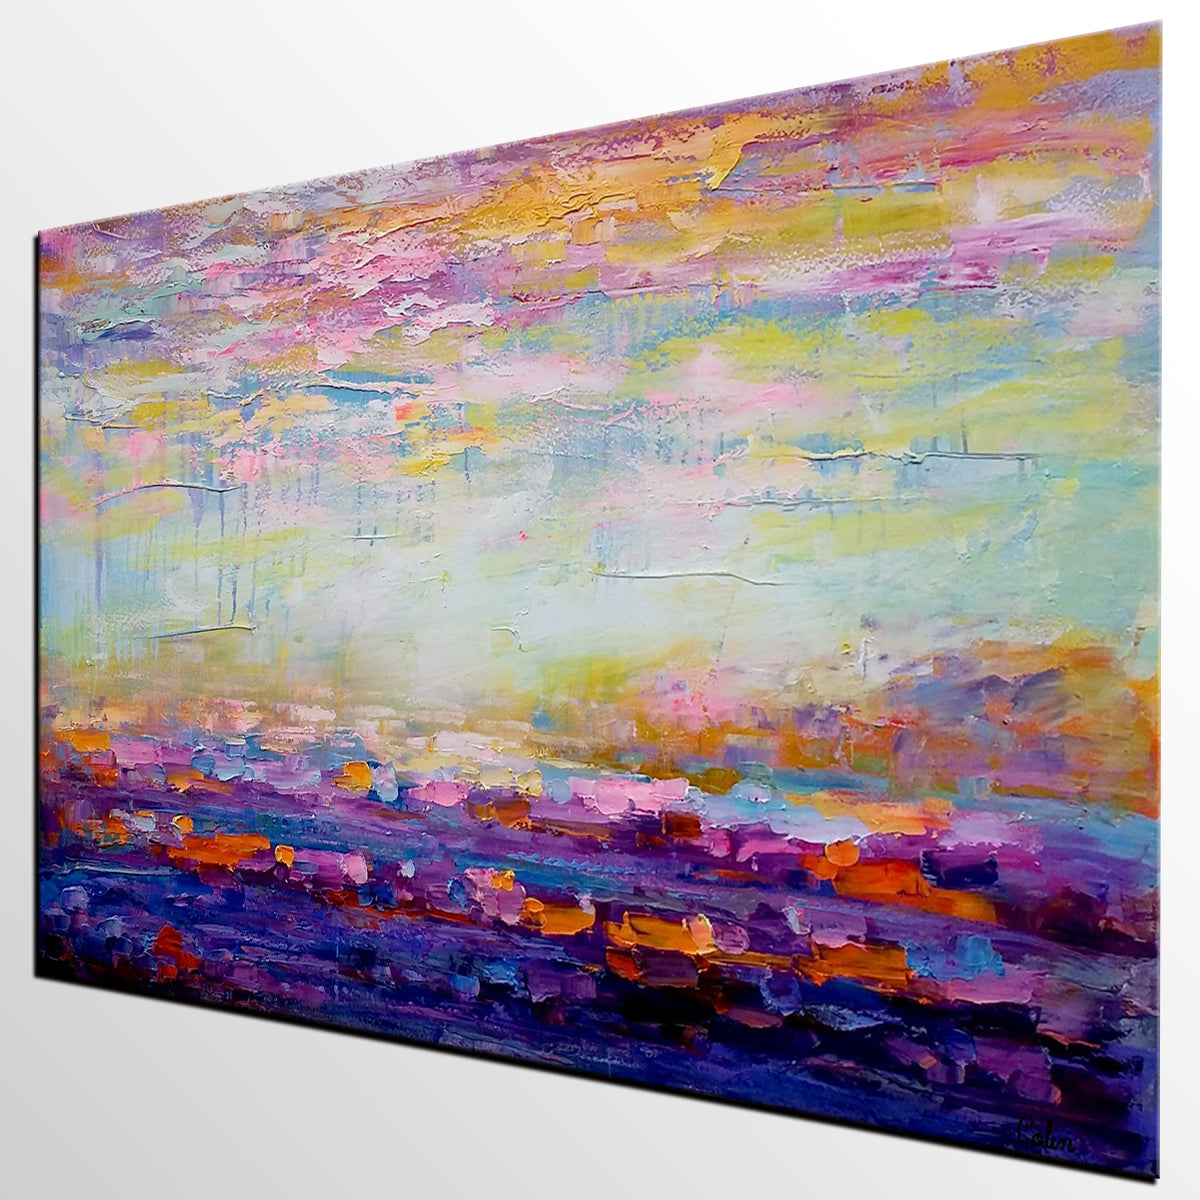 Landscape Painting, Abstract Art, Large Artwork, Canvas Art, Wall Art, Original Painting, Canvas Painting, Home Art 244